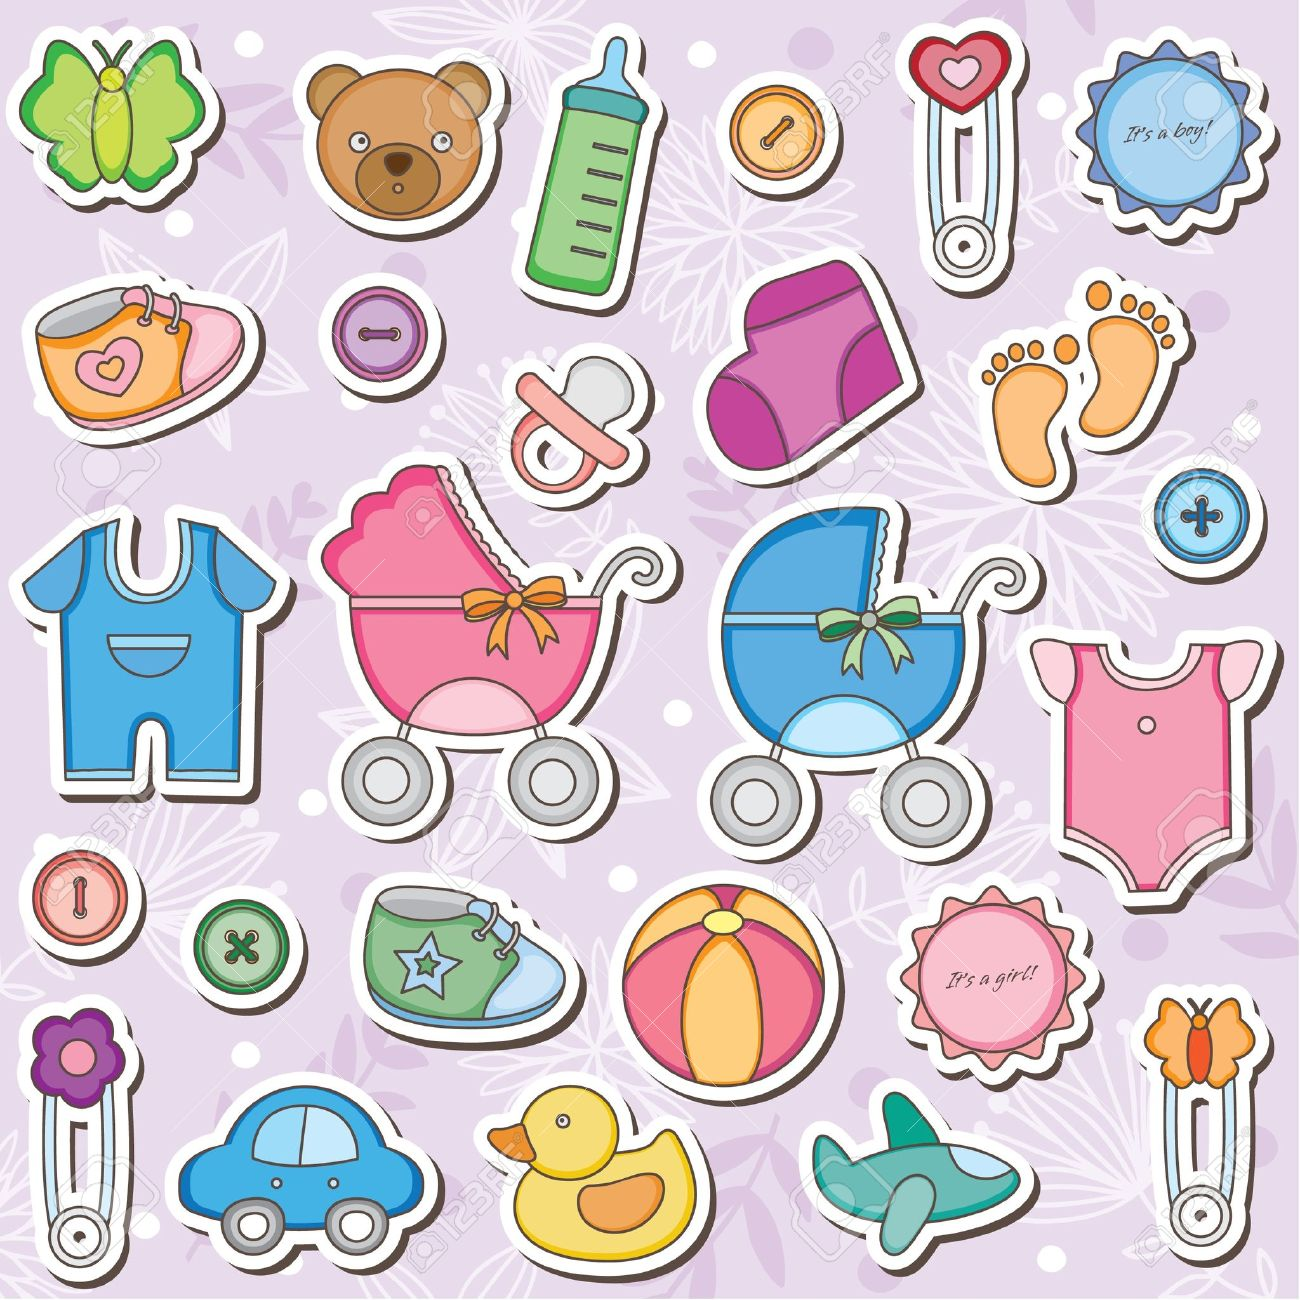 Baby girl supplies clipart clip art royalty free Baby supplies clipart - ClipartFest clip art royalty free